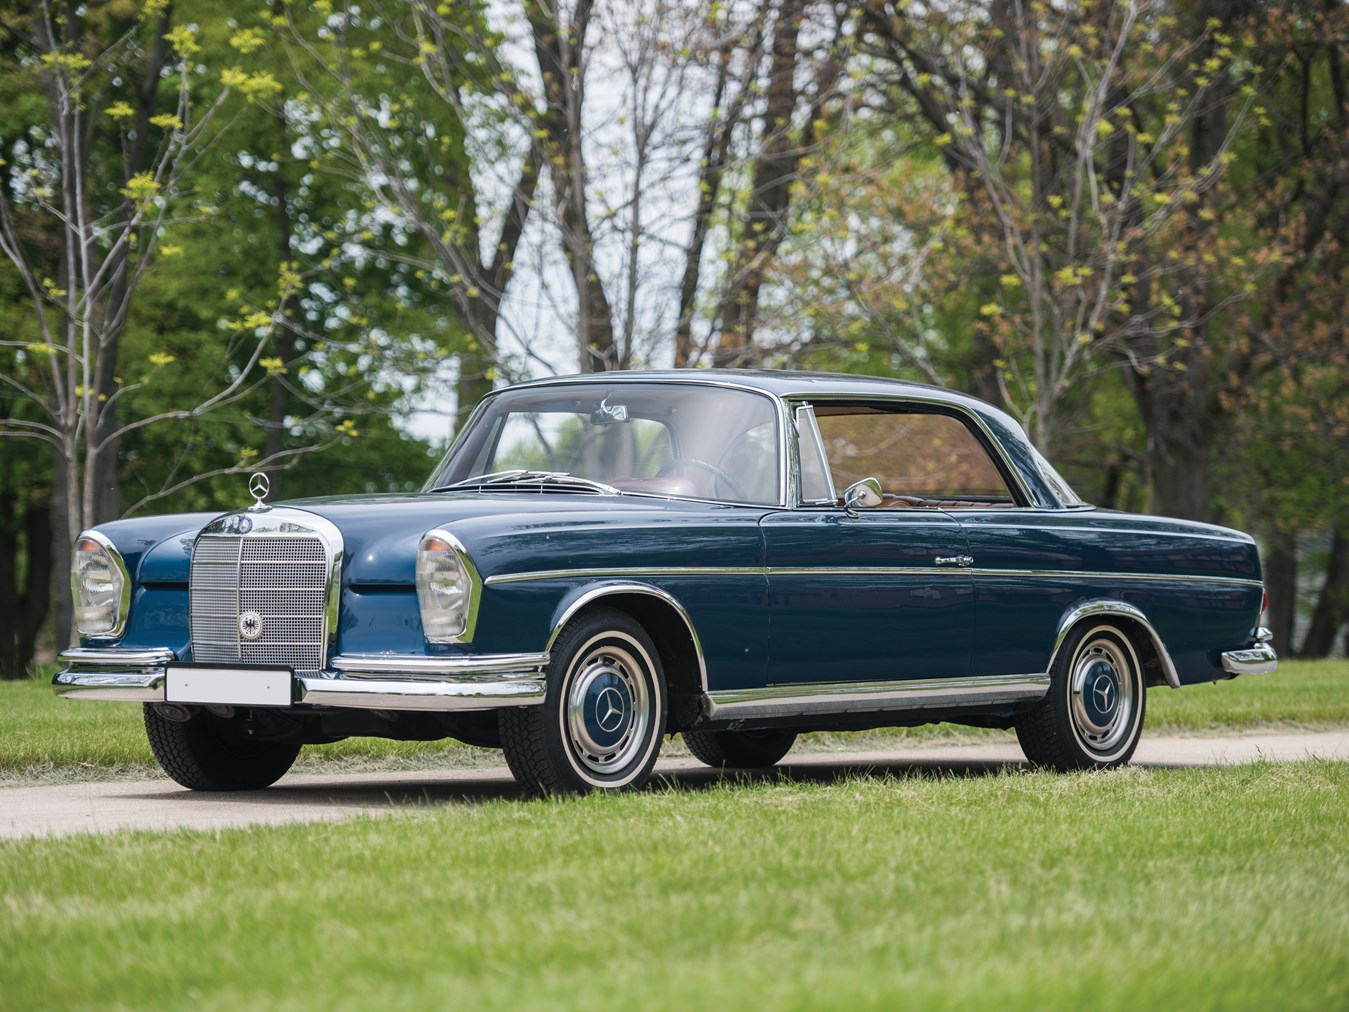 This 1965 Mercedes-Benz 300 SE coupé possesses a clean and unmistakably classic Mercedes-Benz look.